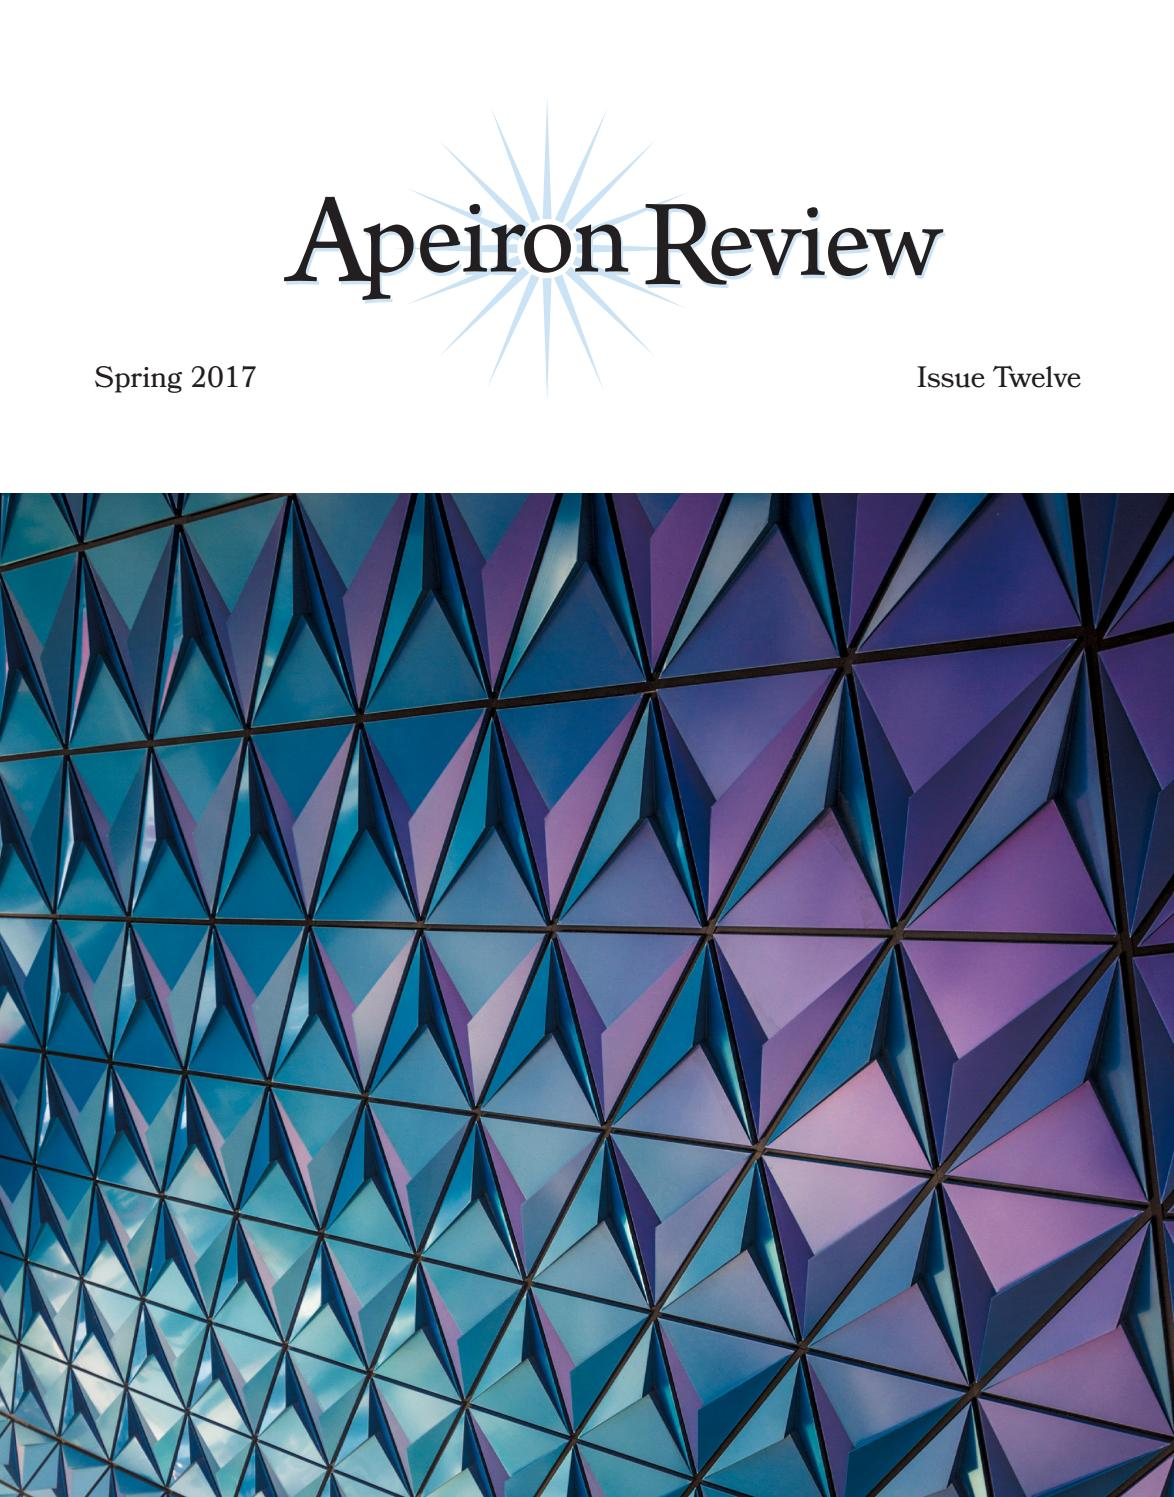 Apeiron Review Spring 2017 By Issuu Led Tail Lights Dakota Digital Wire Trailer Wiring Diagram High